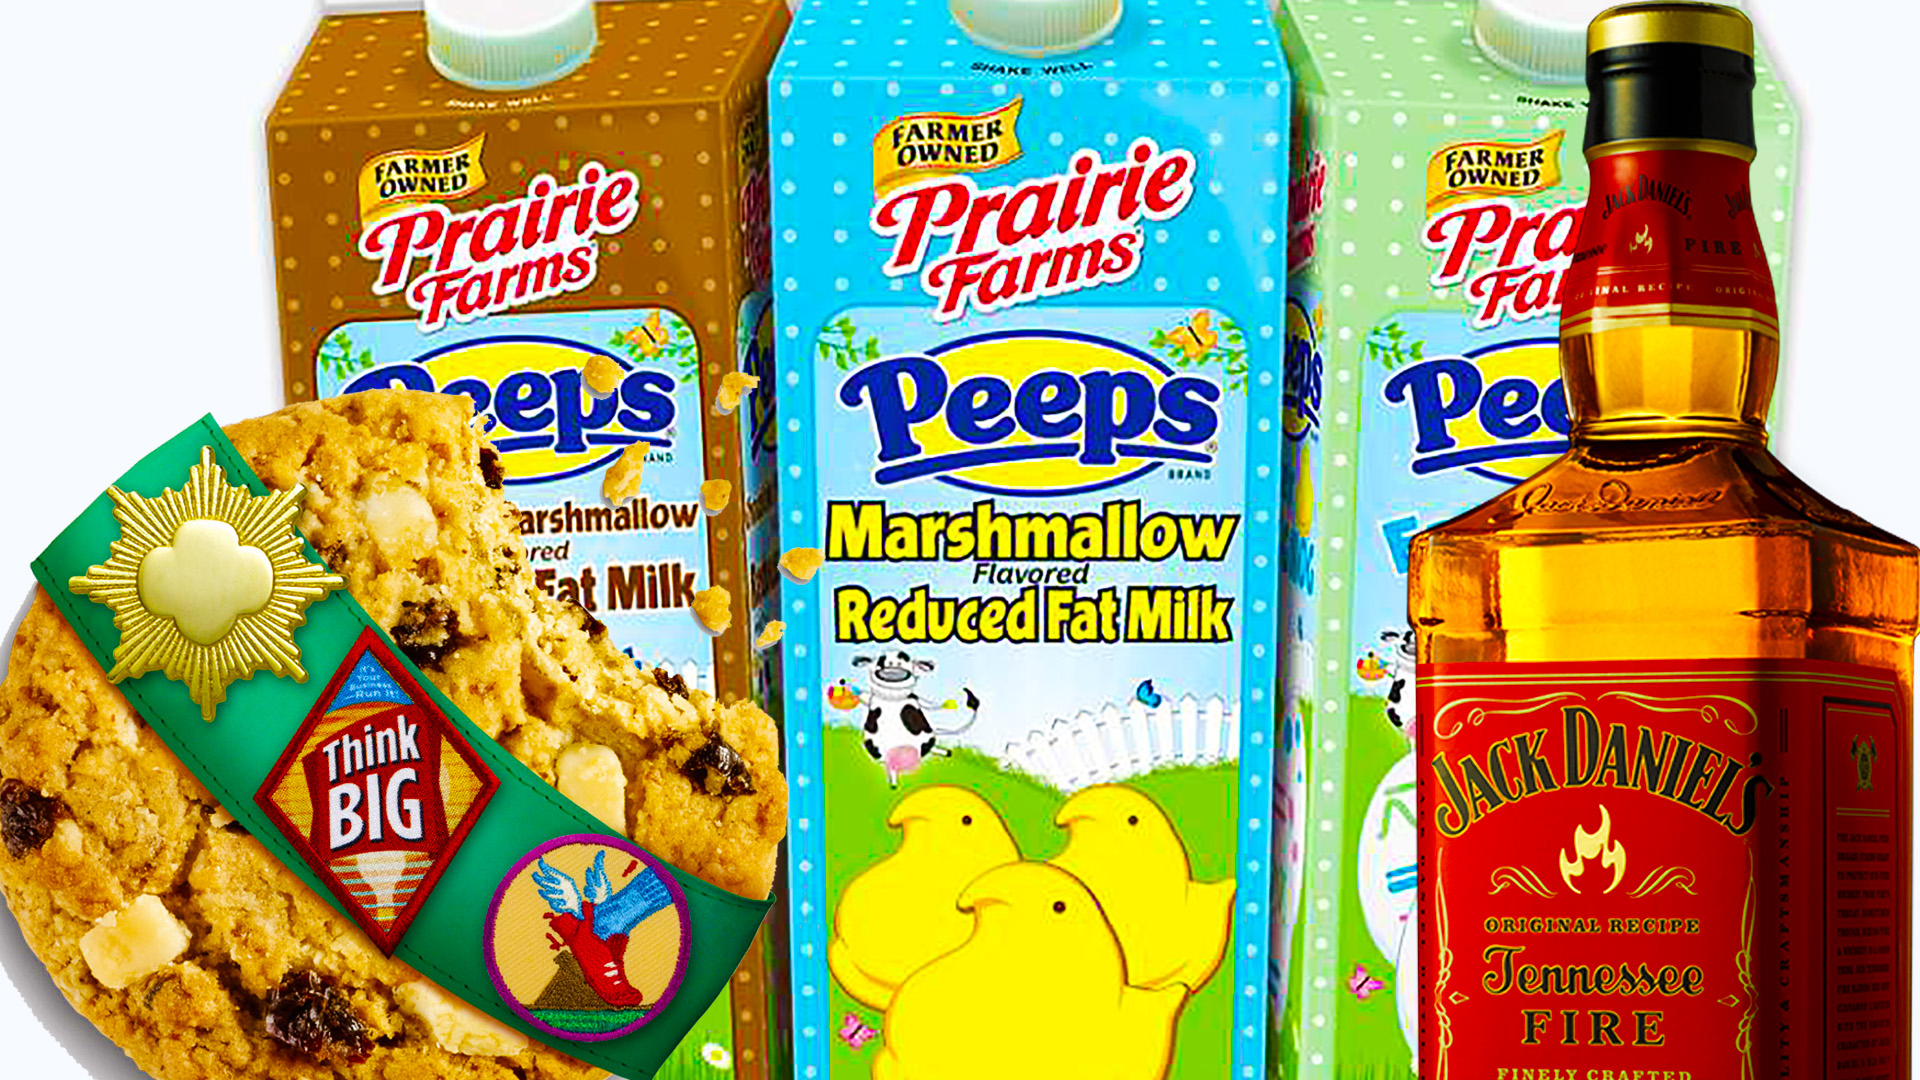 End of The Week Wrap Up: Peeps Milk, Gluten Free Girl Scout Cookies, & More